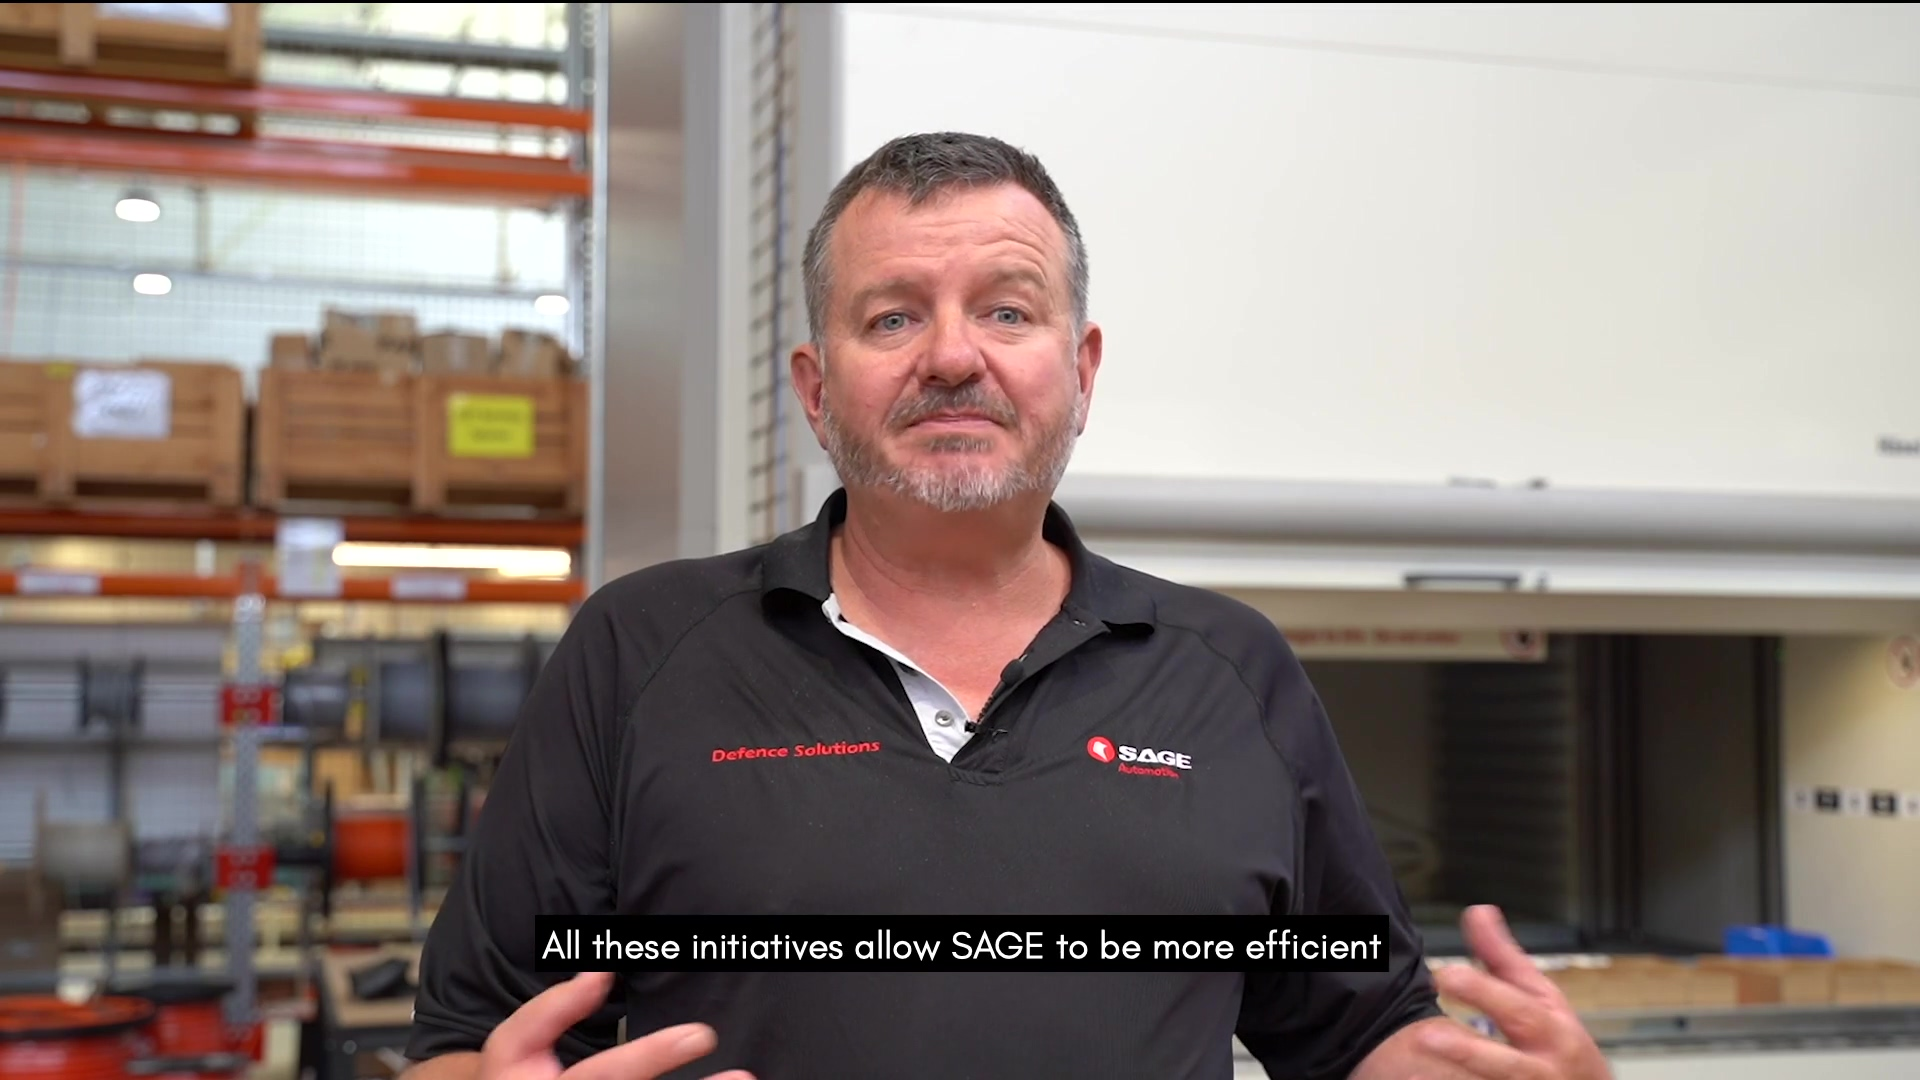 SAGE industry 4.0 manufacturing with Paul Johnson